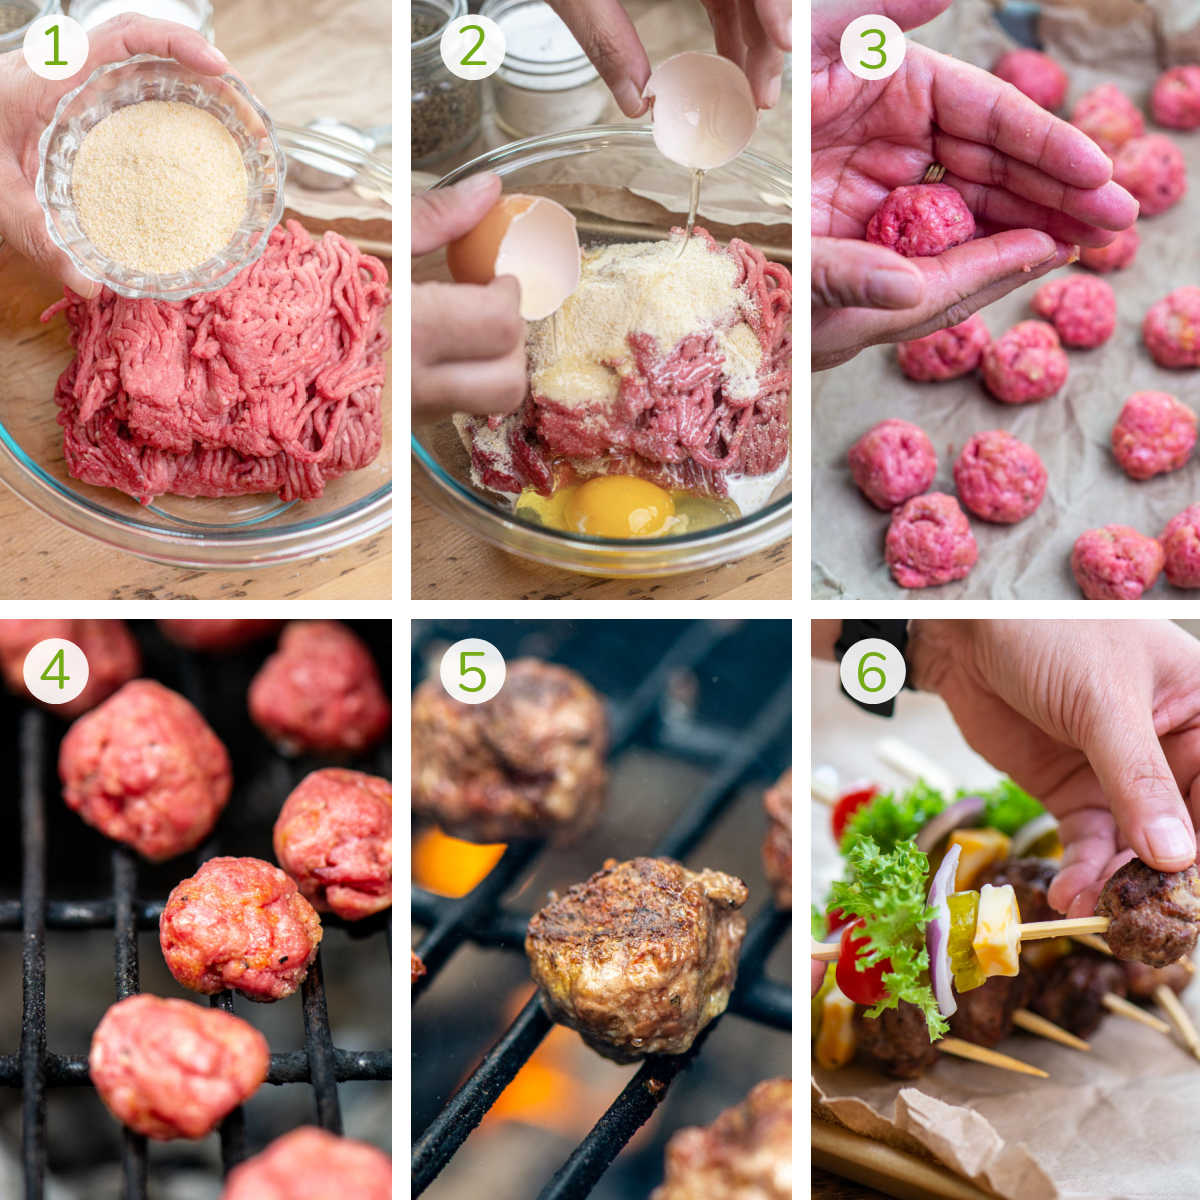 process photos showing making the meatball mix, forming them into balls, grilling and then adding to wooden skewers.